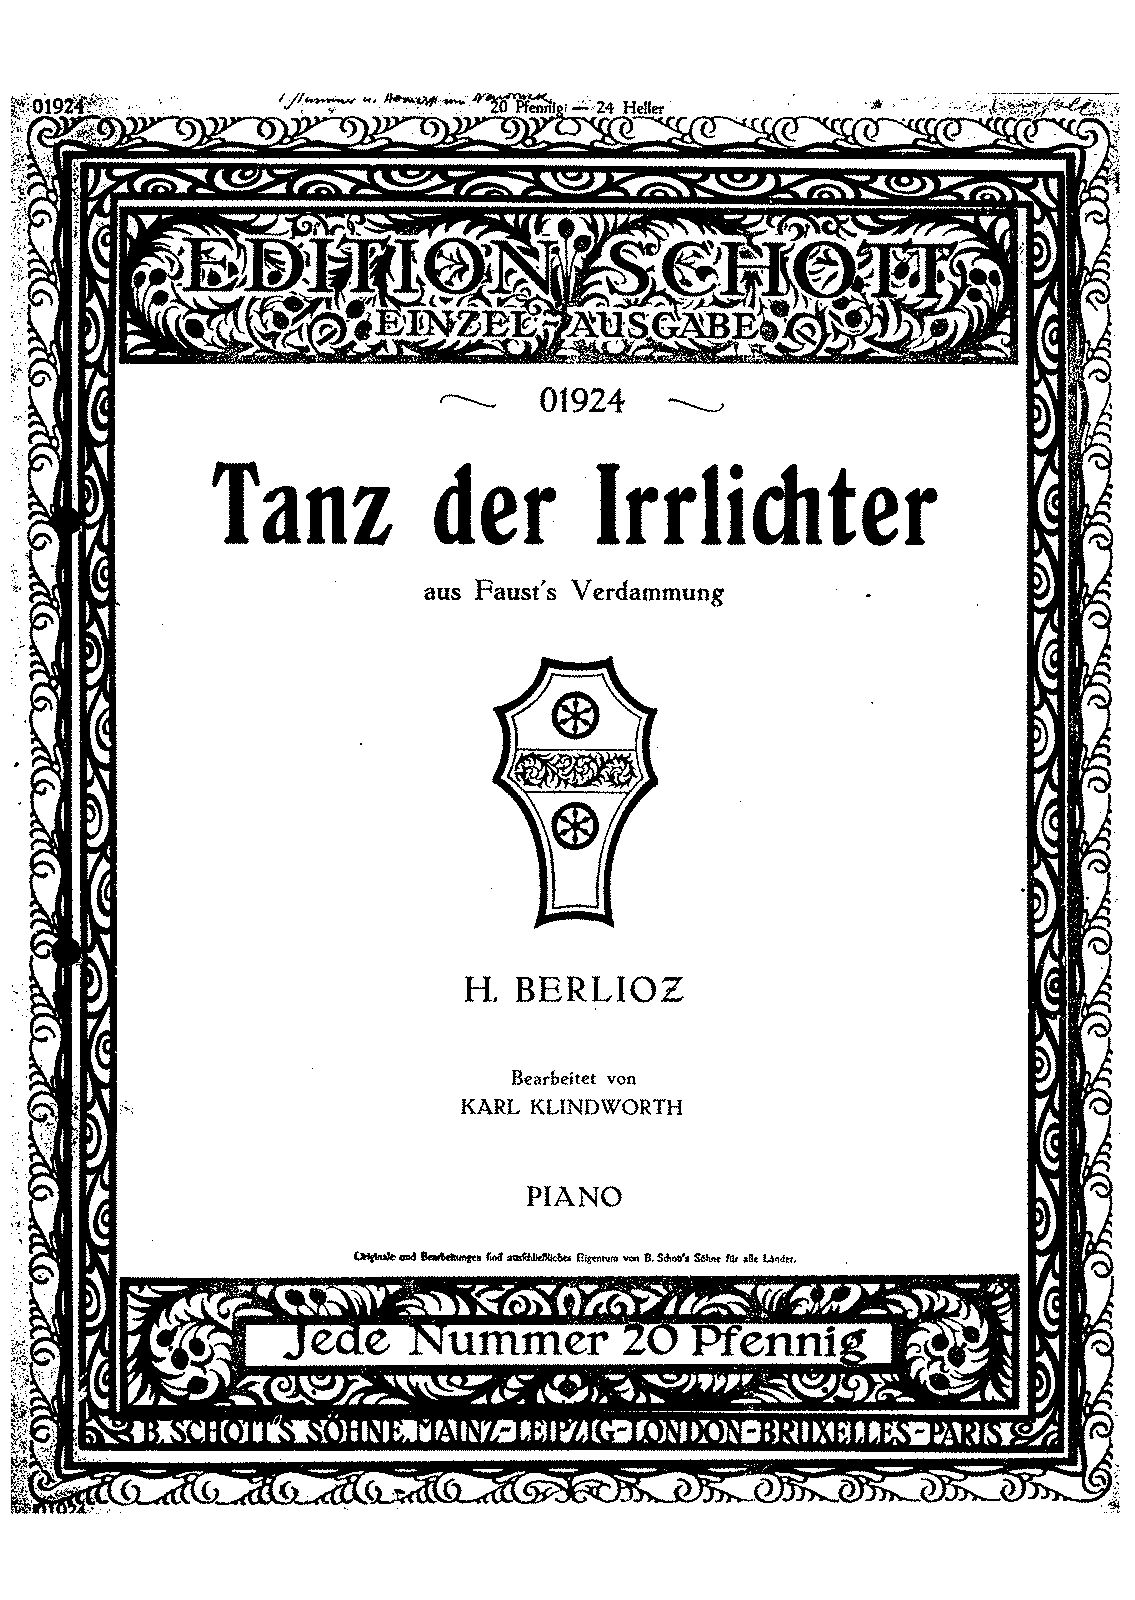 Berlioz-Klindworth Tanz.pdf